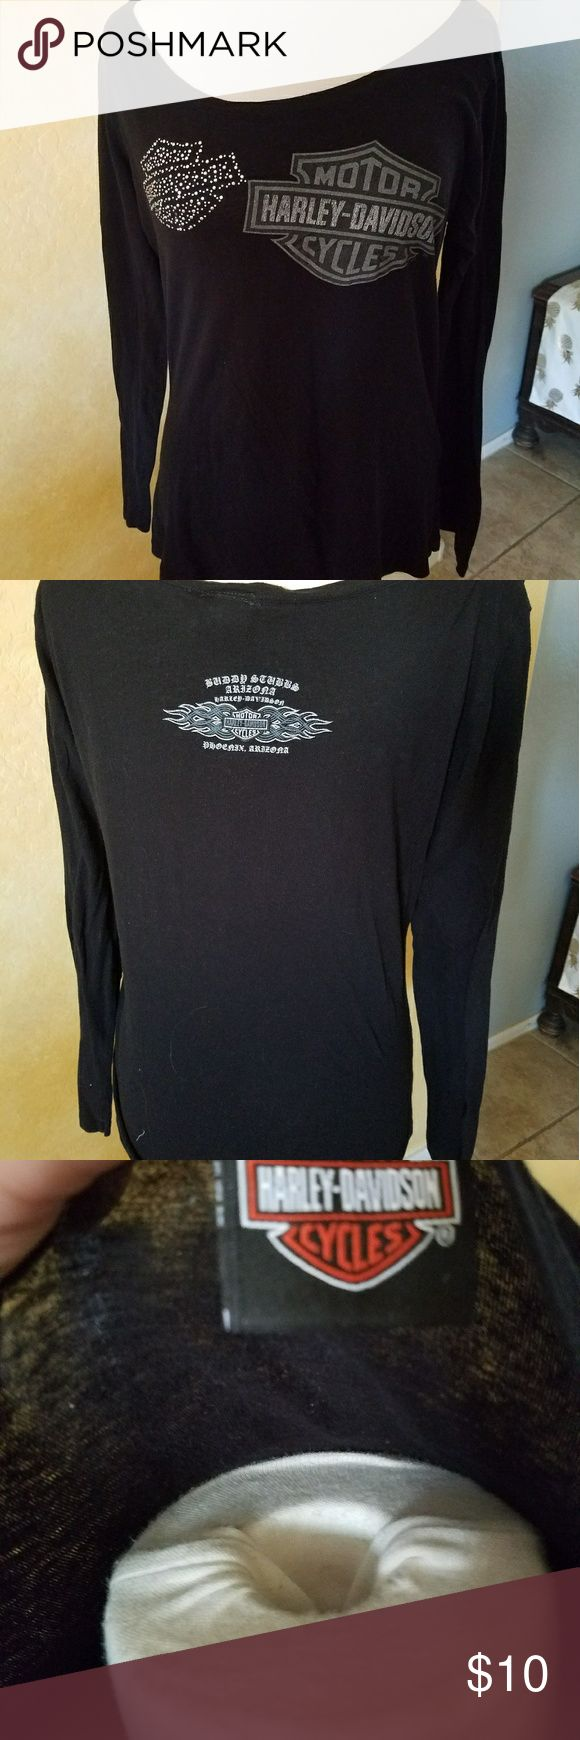 Sexy Harley Davidson bling shirt Lightweight bling. Small tear in front bottom of shirt as noted in pictures. Still wearable. Harley-Davidson Tops Tees - Long Sleeve